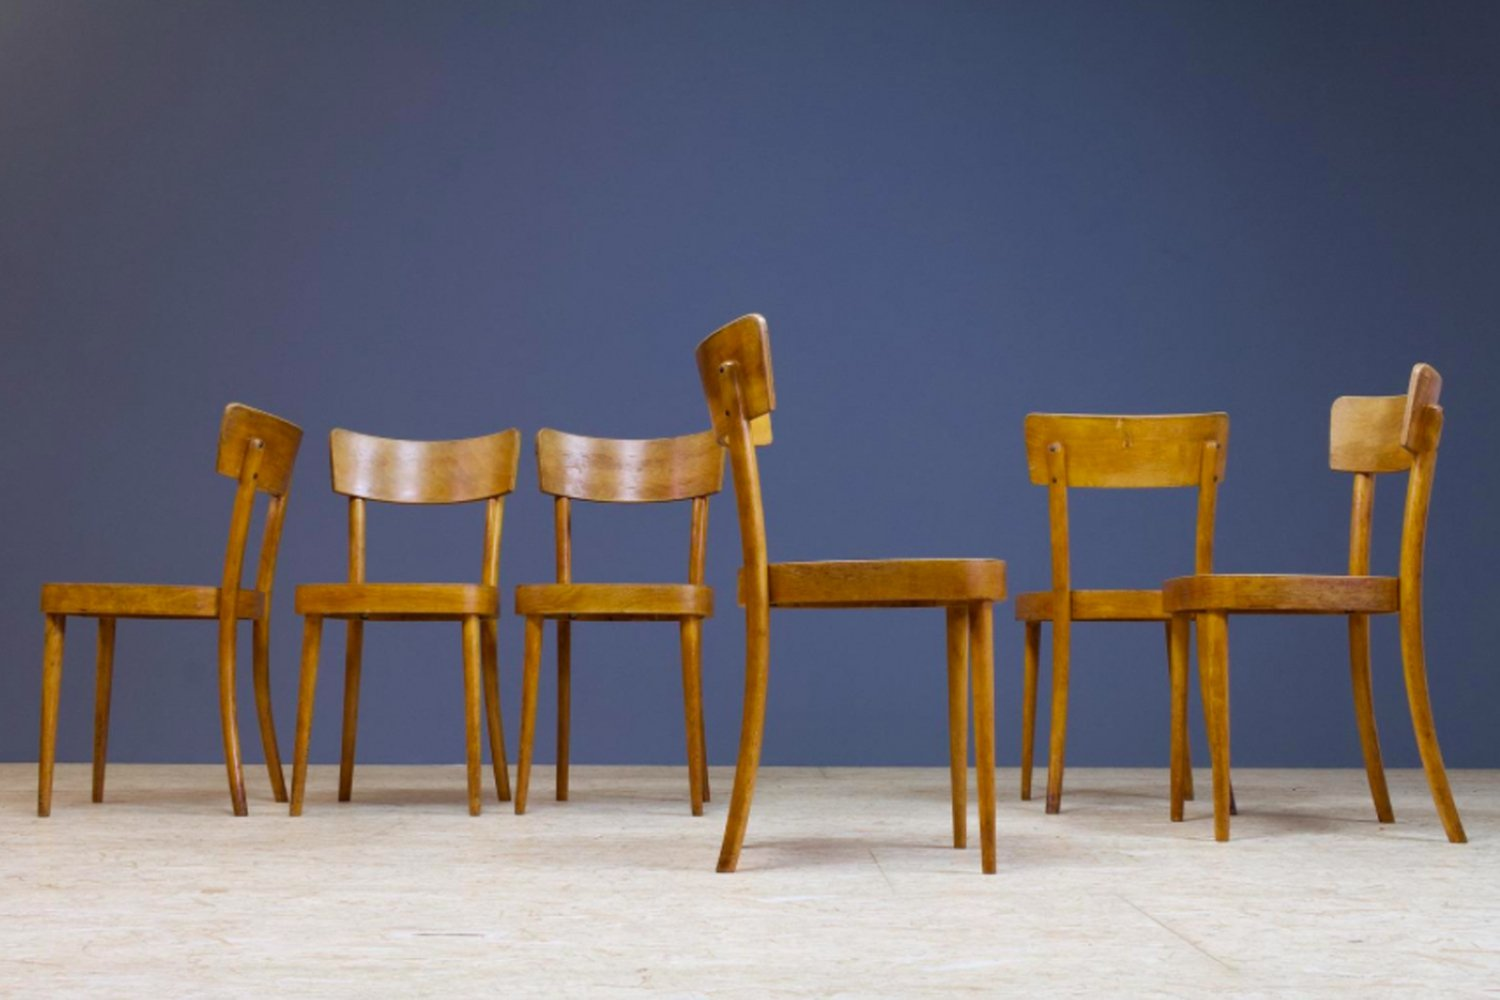 Set of 6 Plywood Bistro chairs, 1960s